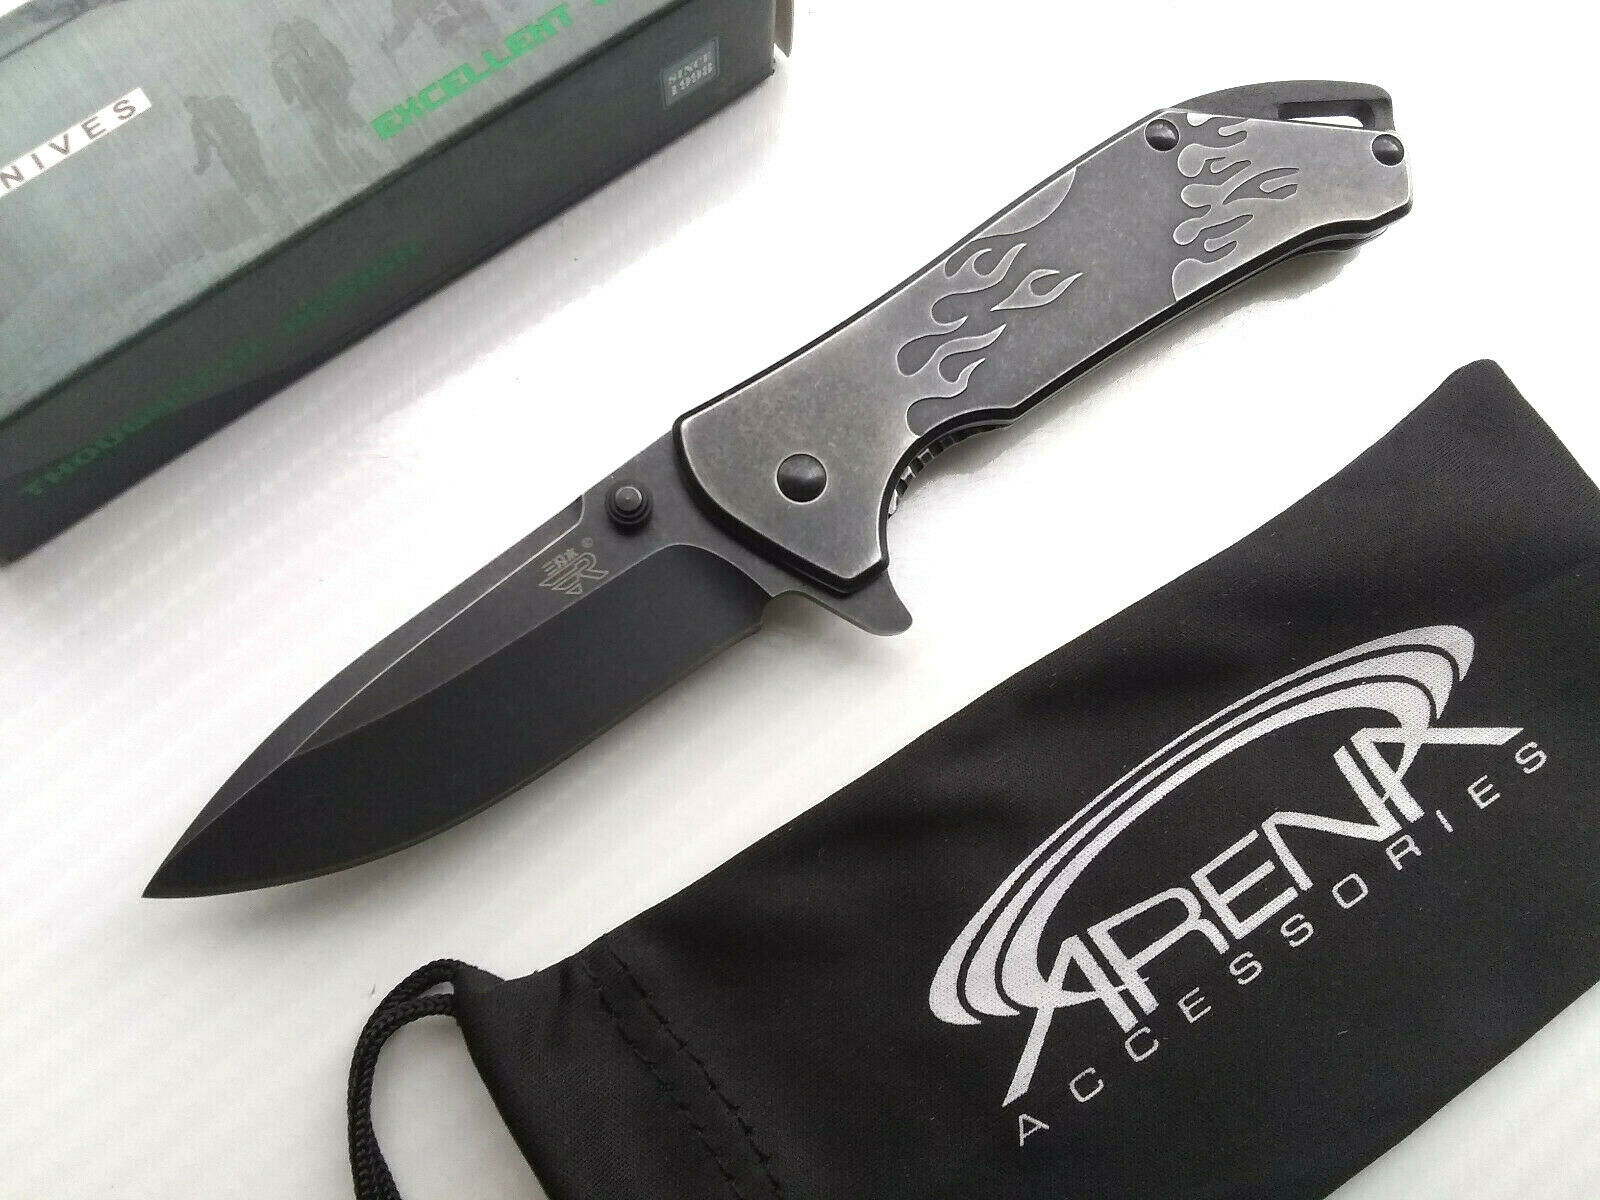 Sanrenmu 7089 Fiery Flames Manual Open 12C27 Sandvik Stonewashed Pocket Knife EDC Small Flipper